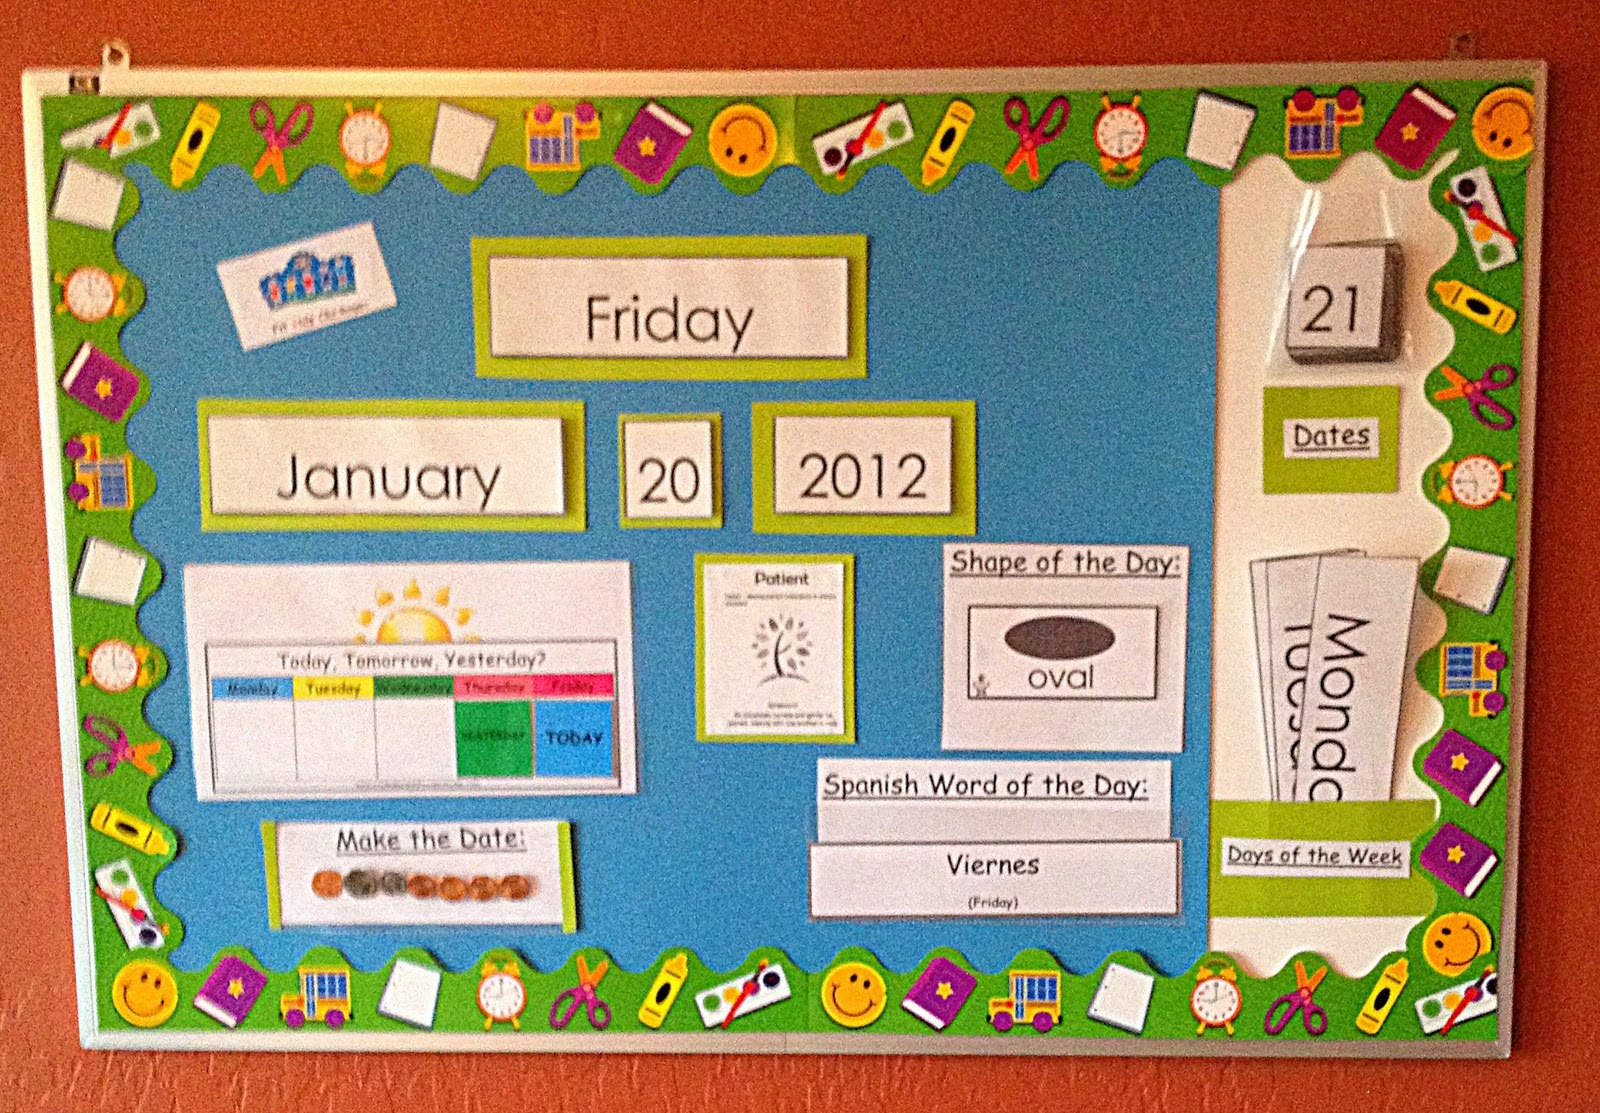 Kindergarten Calendar For Parents : Fit kids clubhouse calendar yesterday or tomorrow